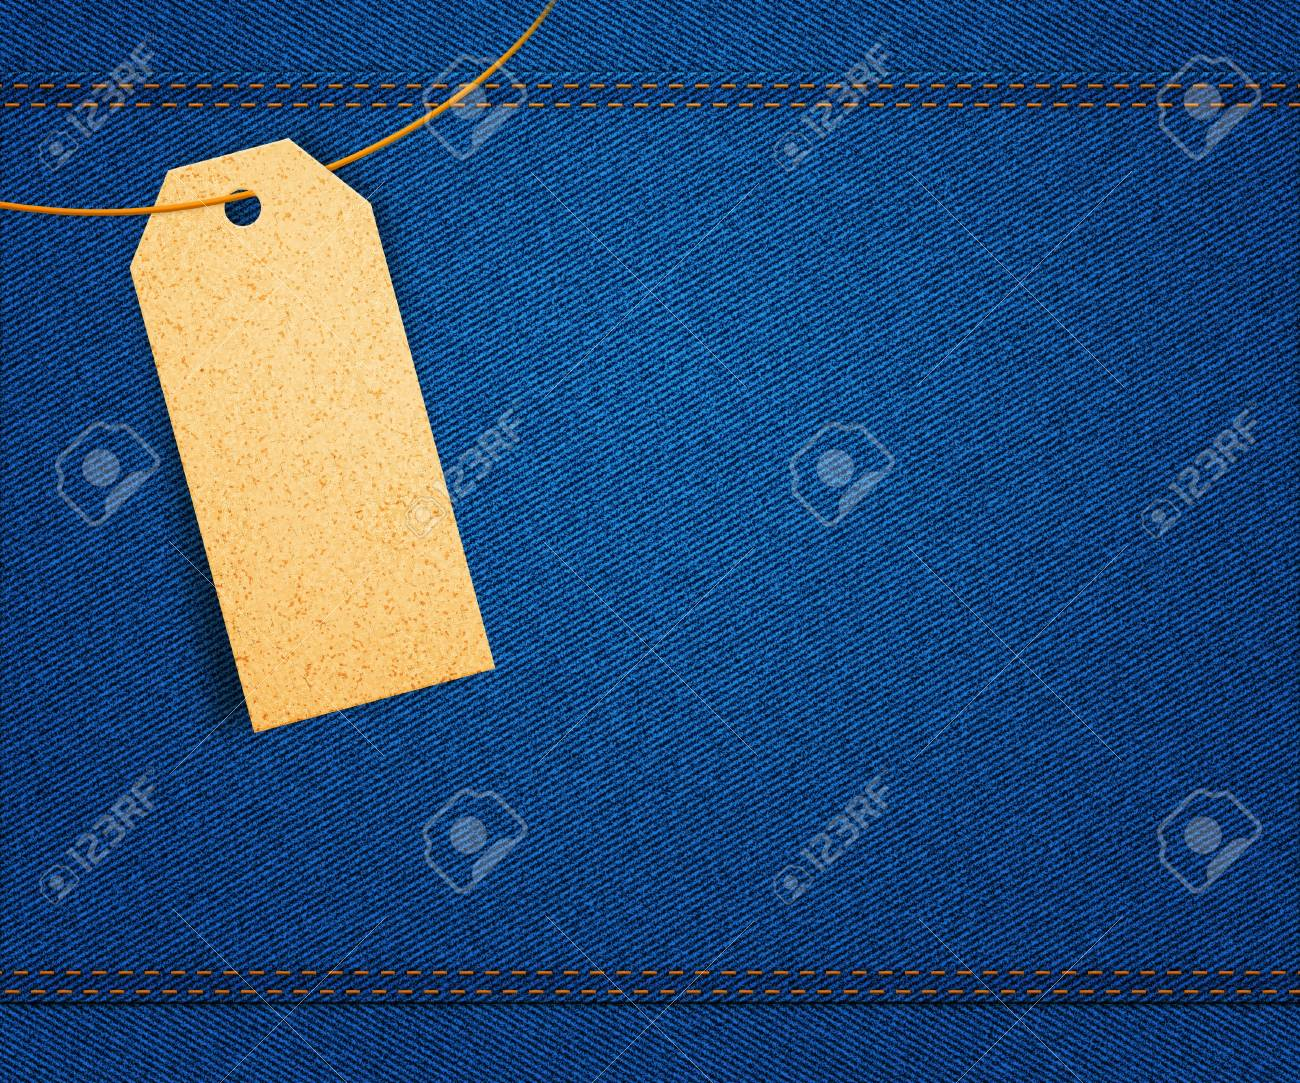 Clothes Label on Jeans Stock Photo - 14844073